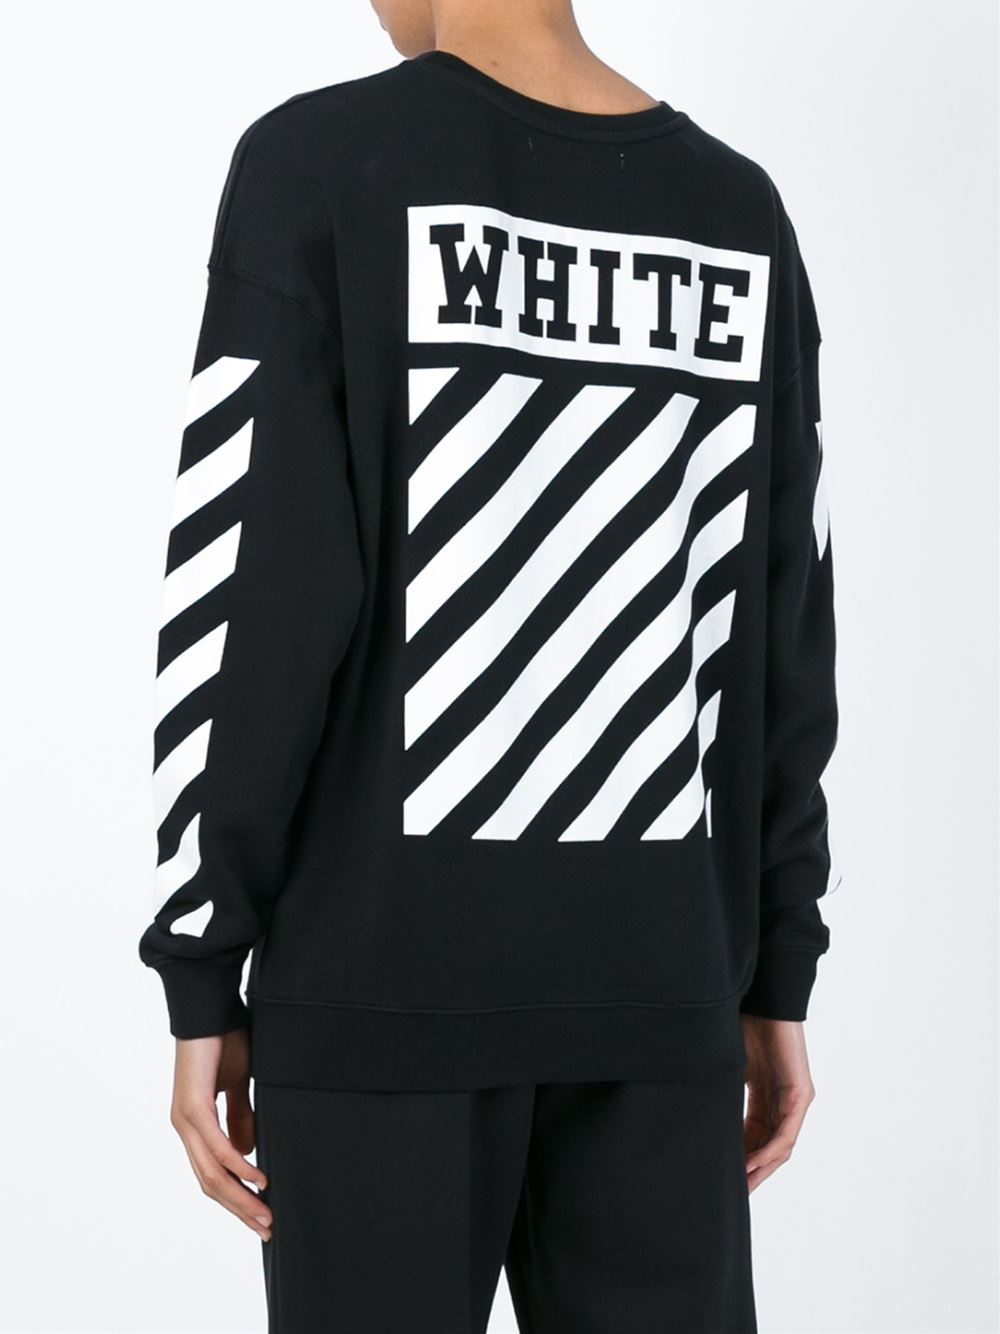 Off-white c/o virgil abloh Striped Detail Sweatshirt in Black | Lyst